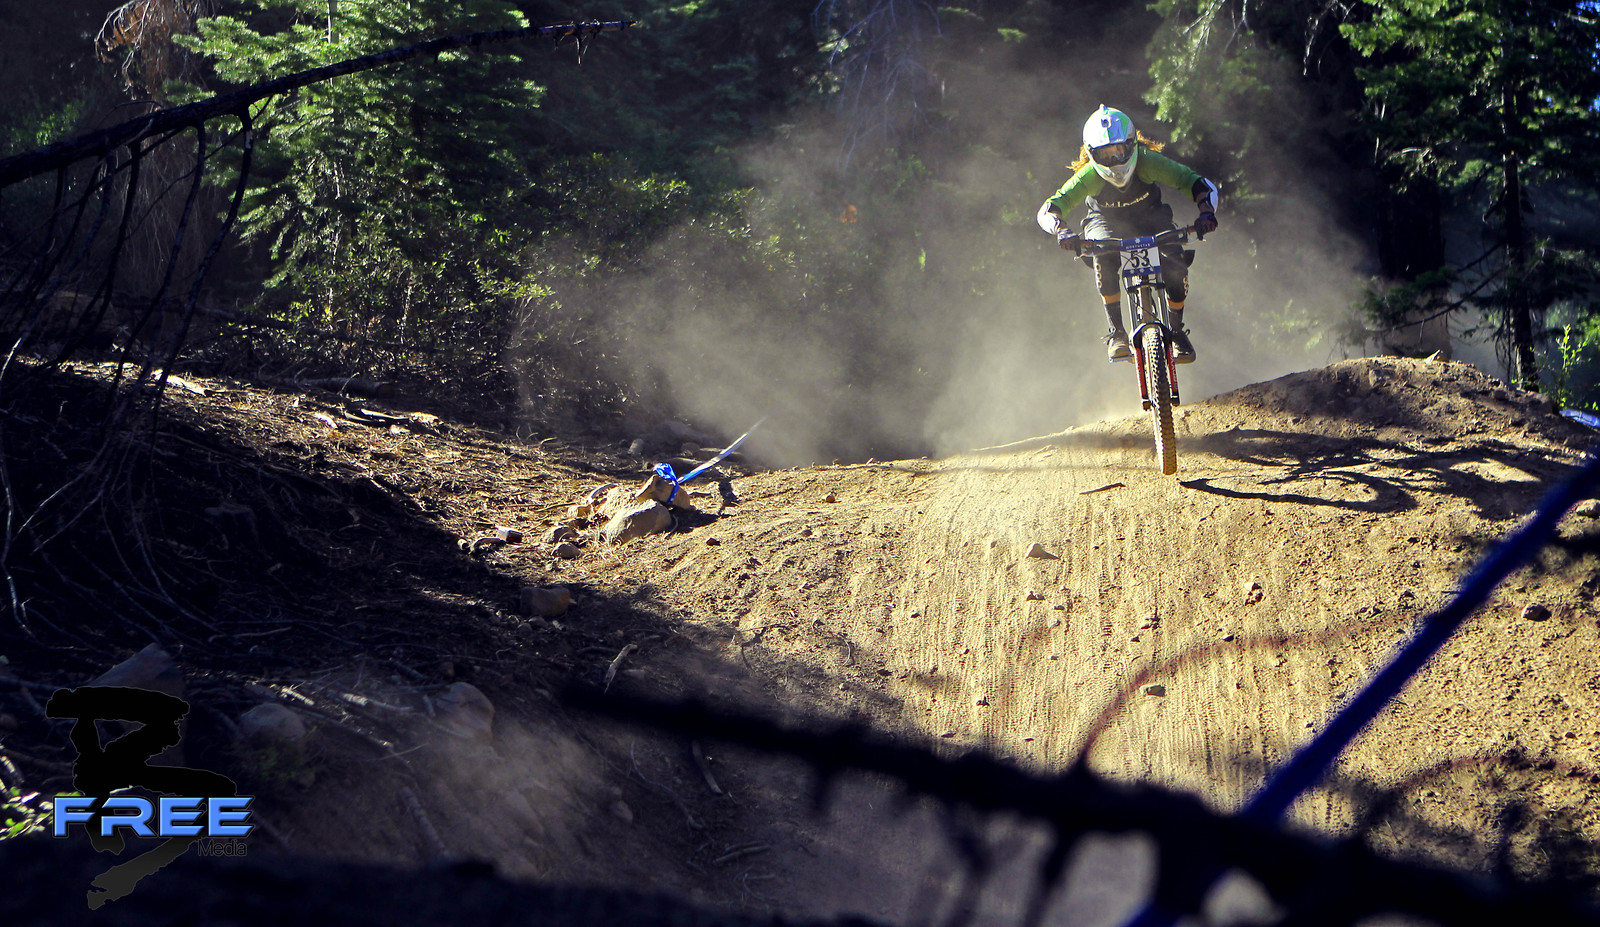 done6 1 - GnarHuck - Mountain Biking Pictures - Vital MTB